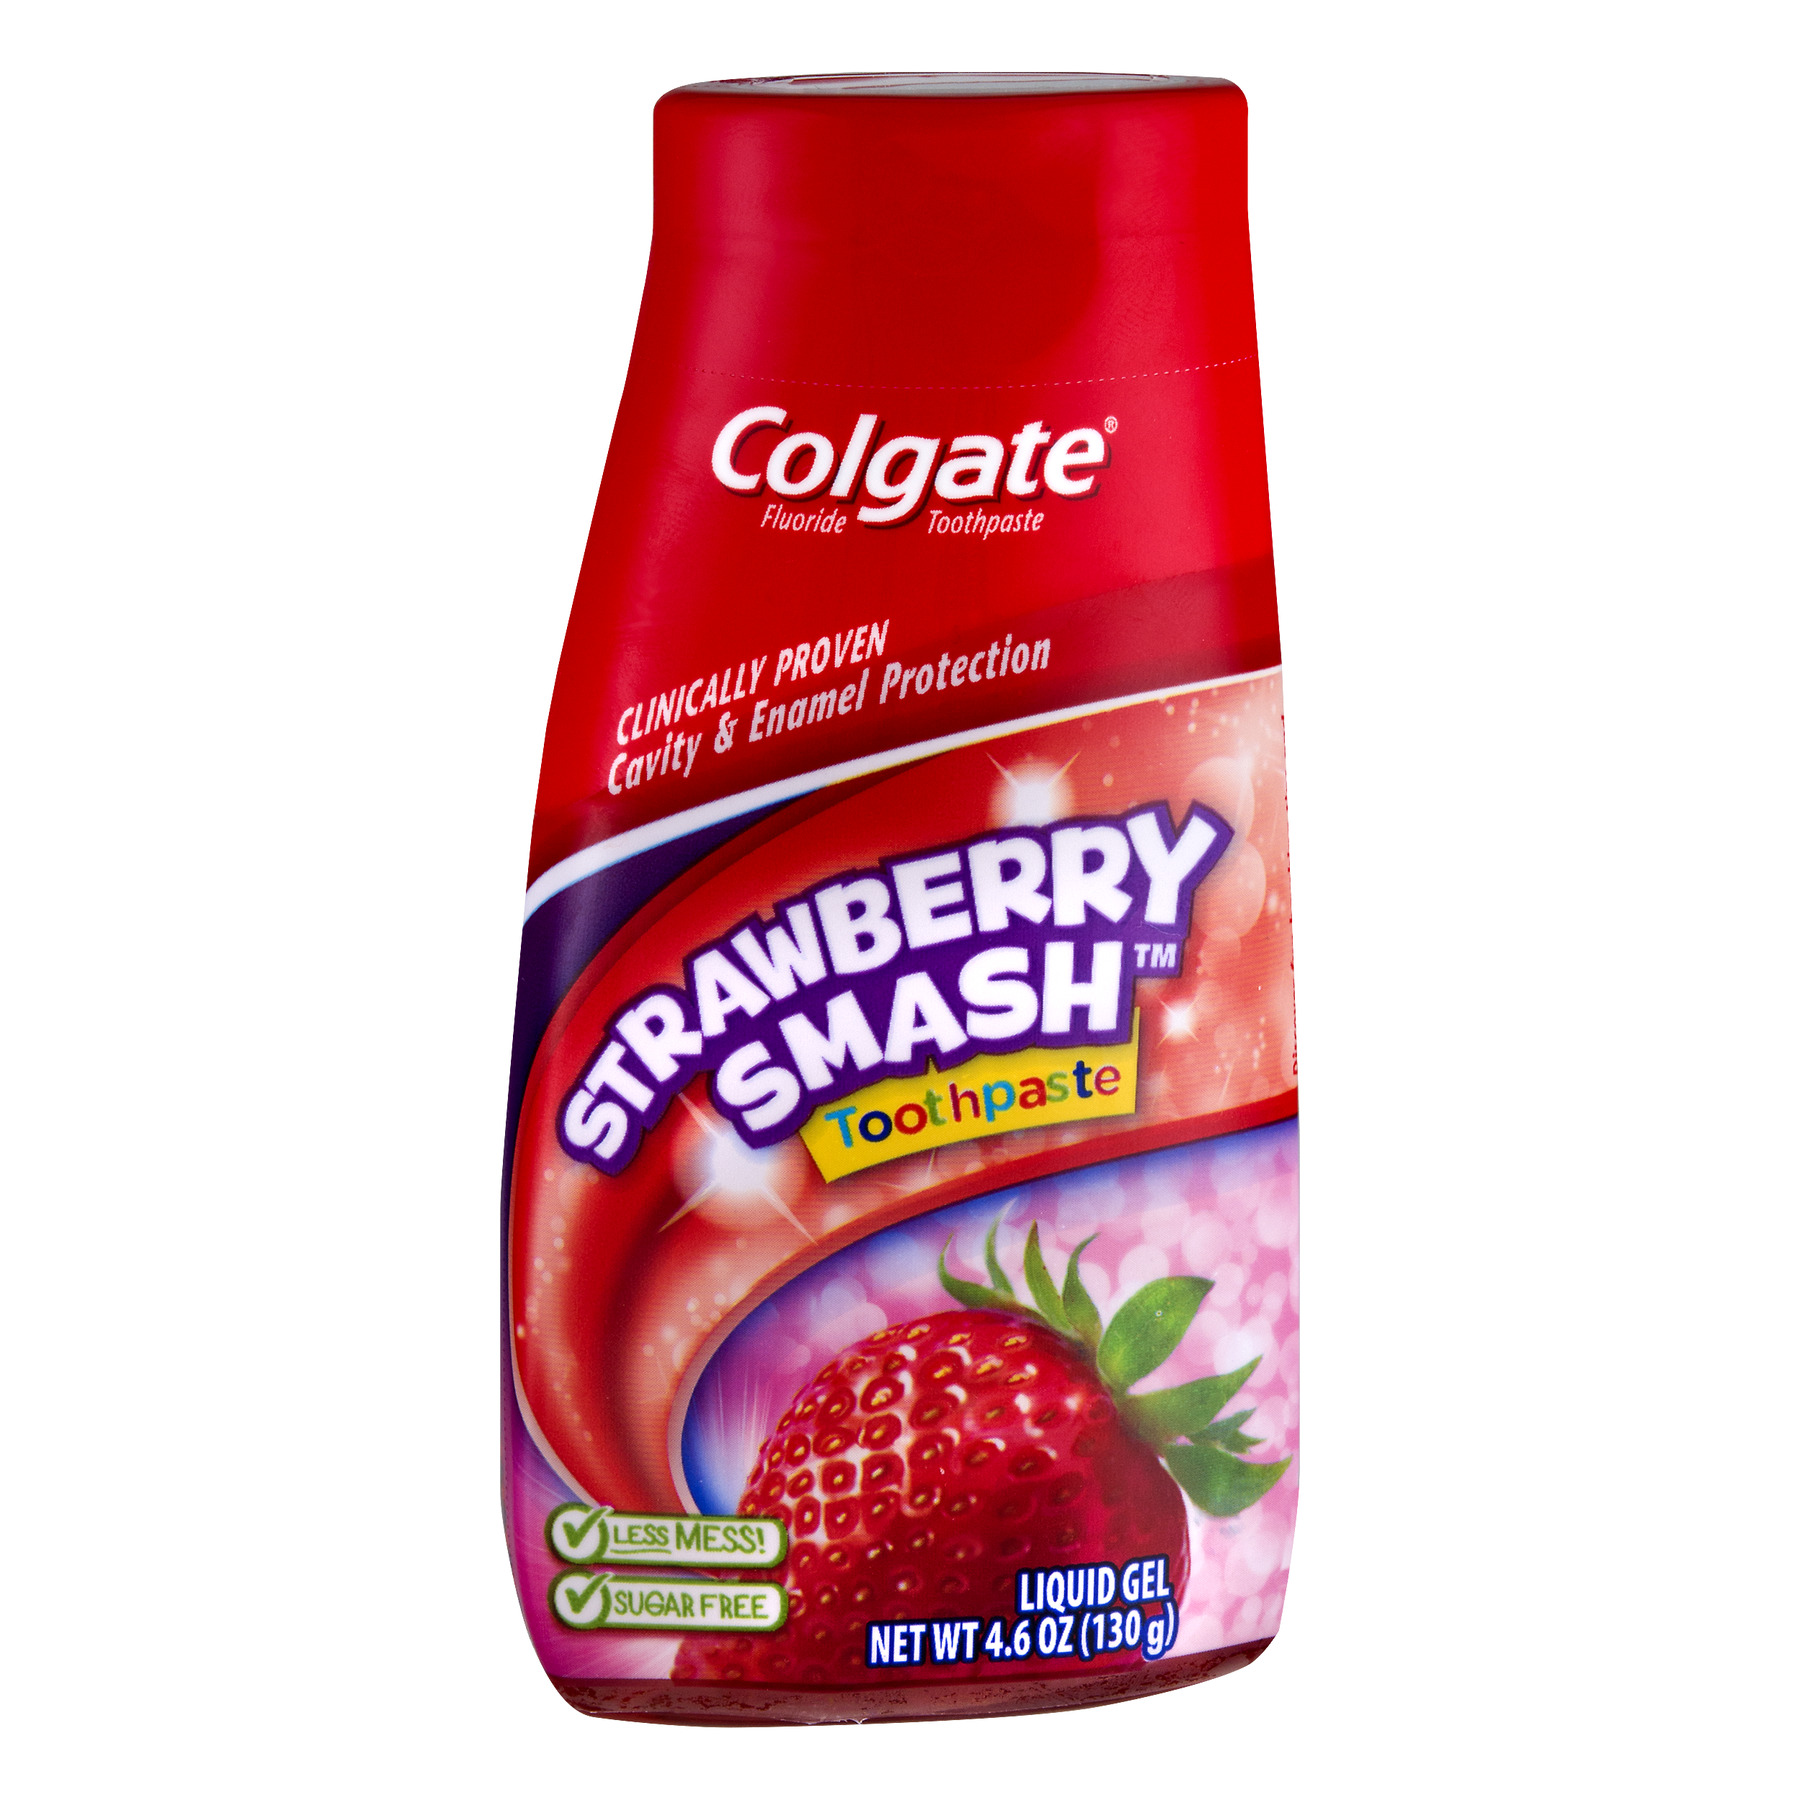 Colgate Kids 2-in-1 Toothpaste and Mouthwash, Strawberry - 4.6 oz